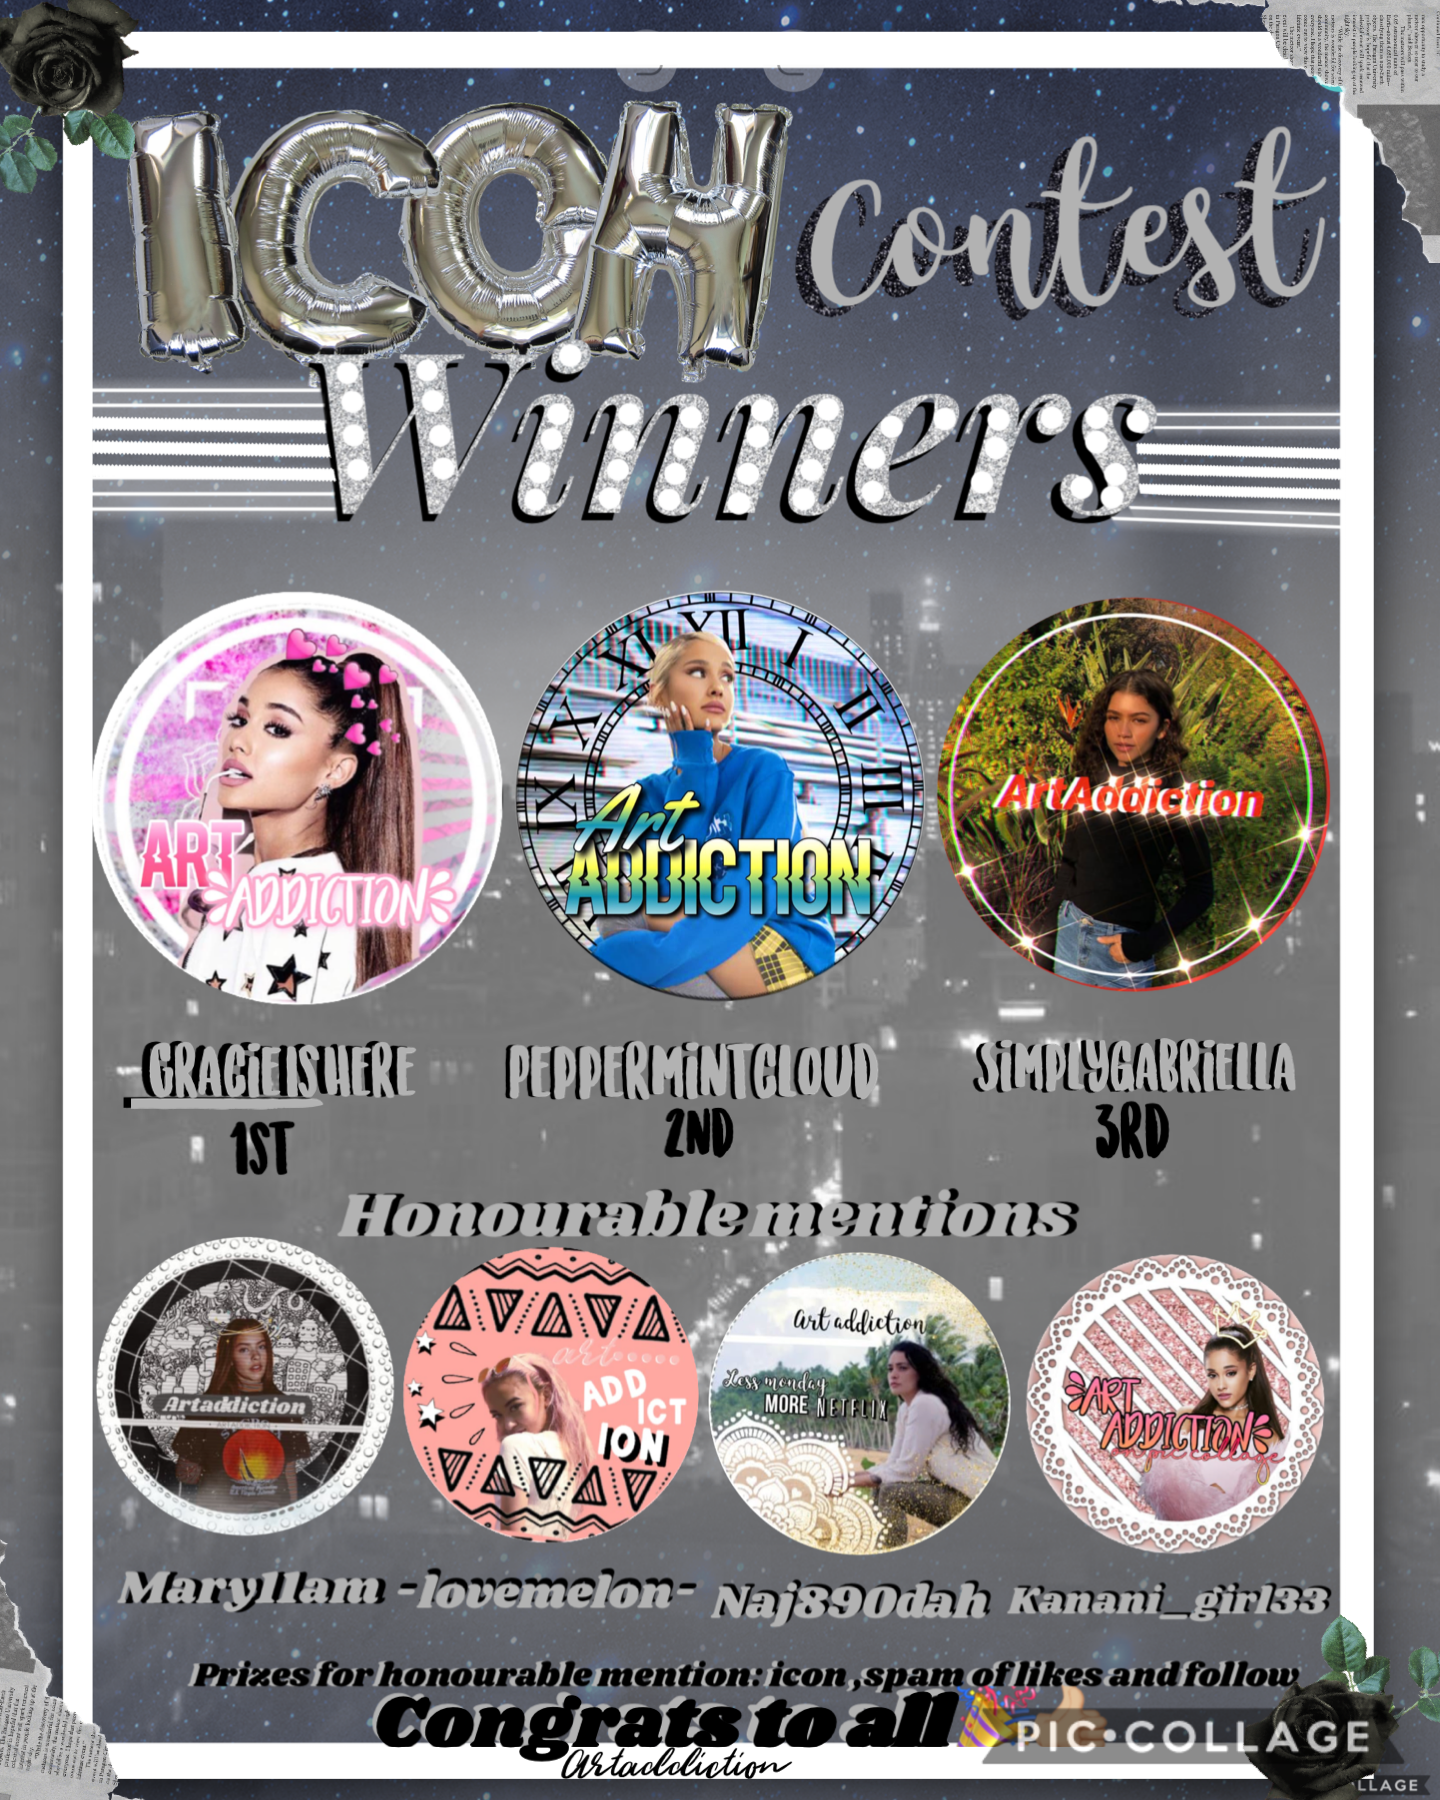 Congrats to all amazing talented collagers , prizes given soon and prizes in remix of icon contest 😘❤️👍🏼🎉